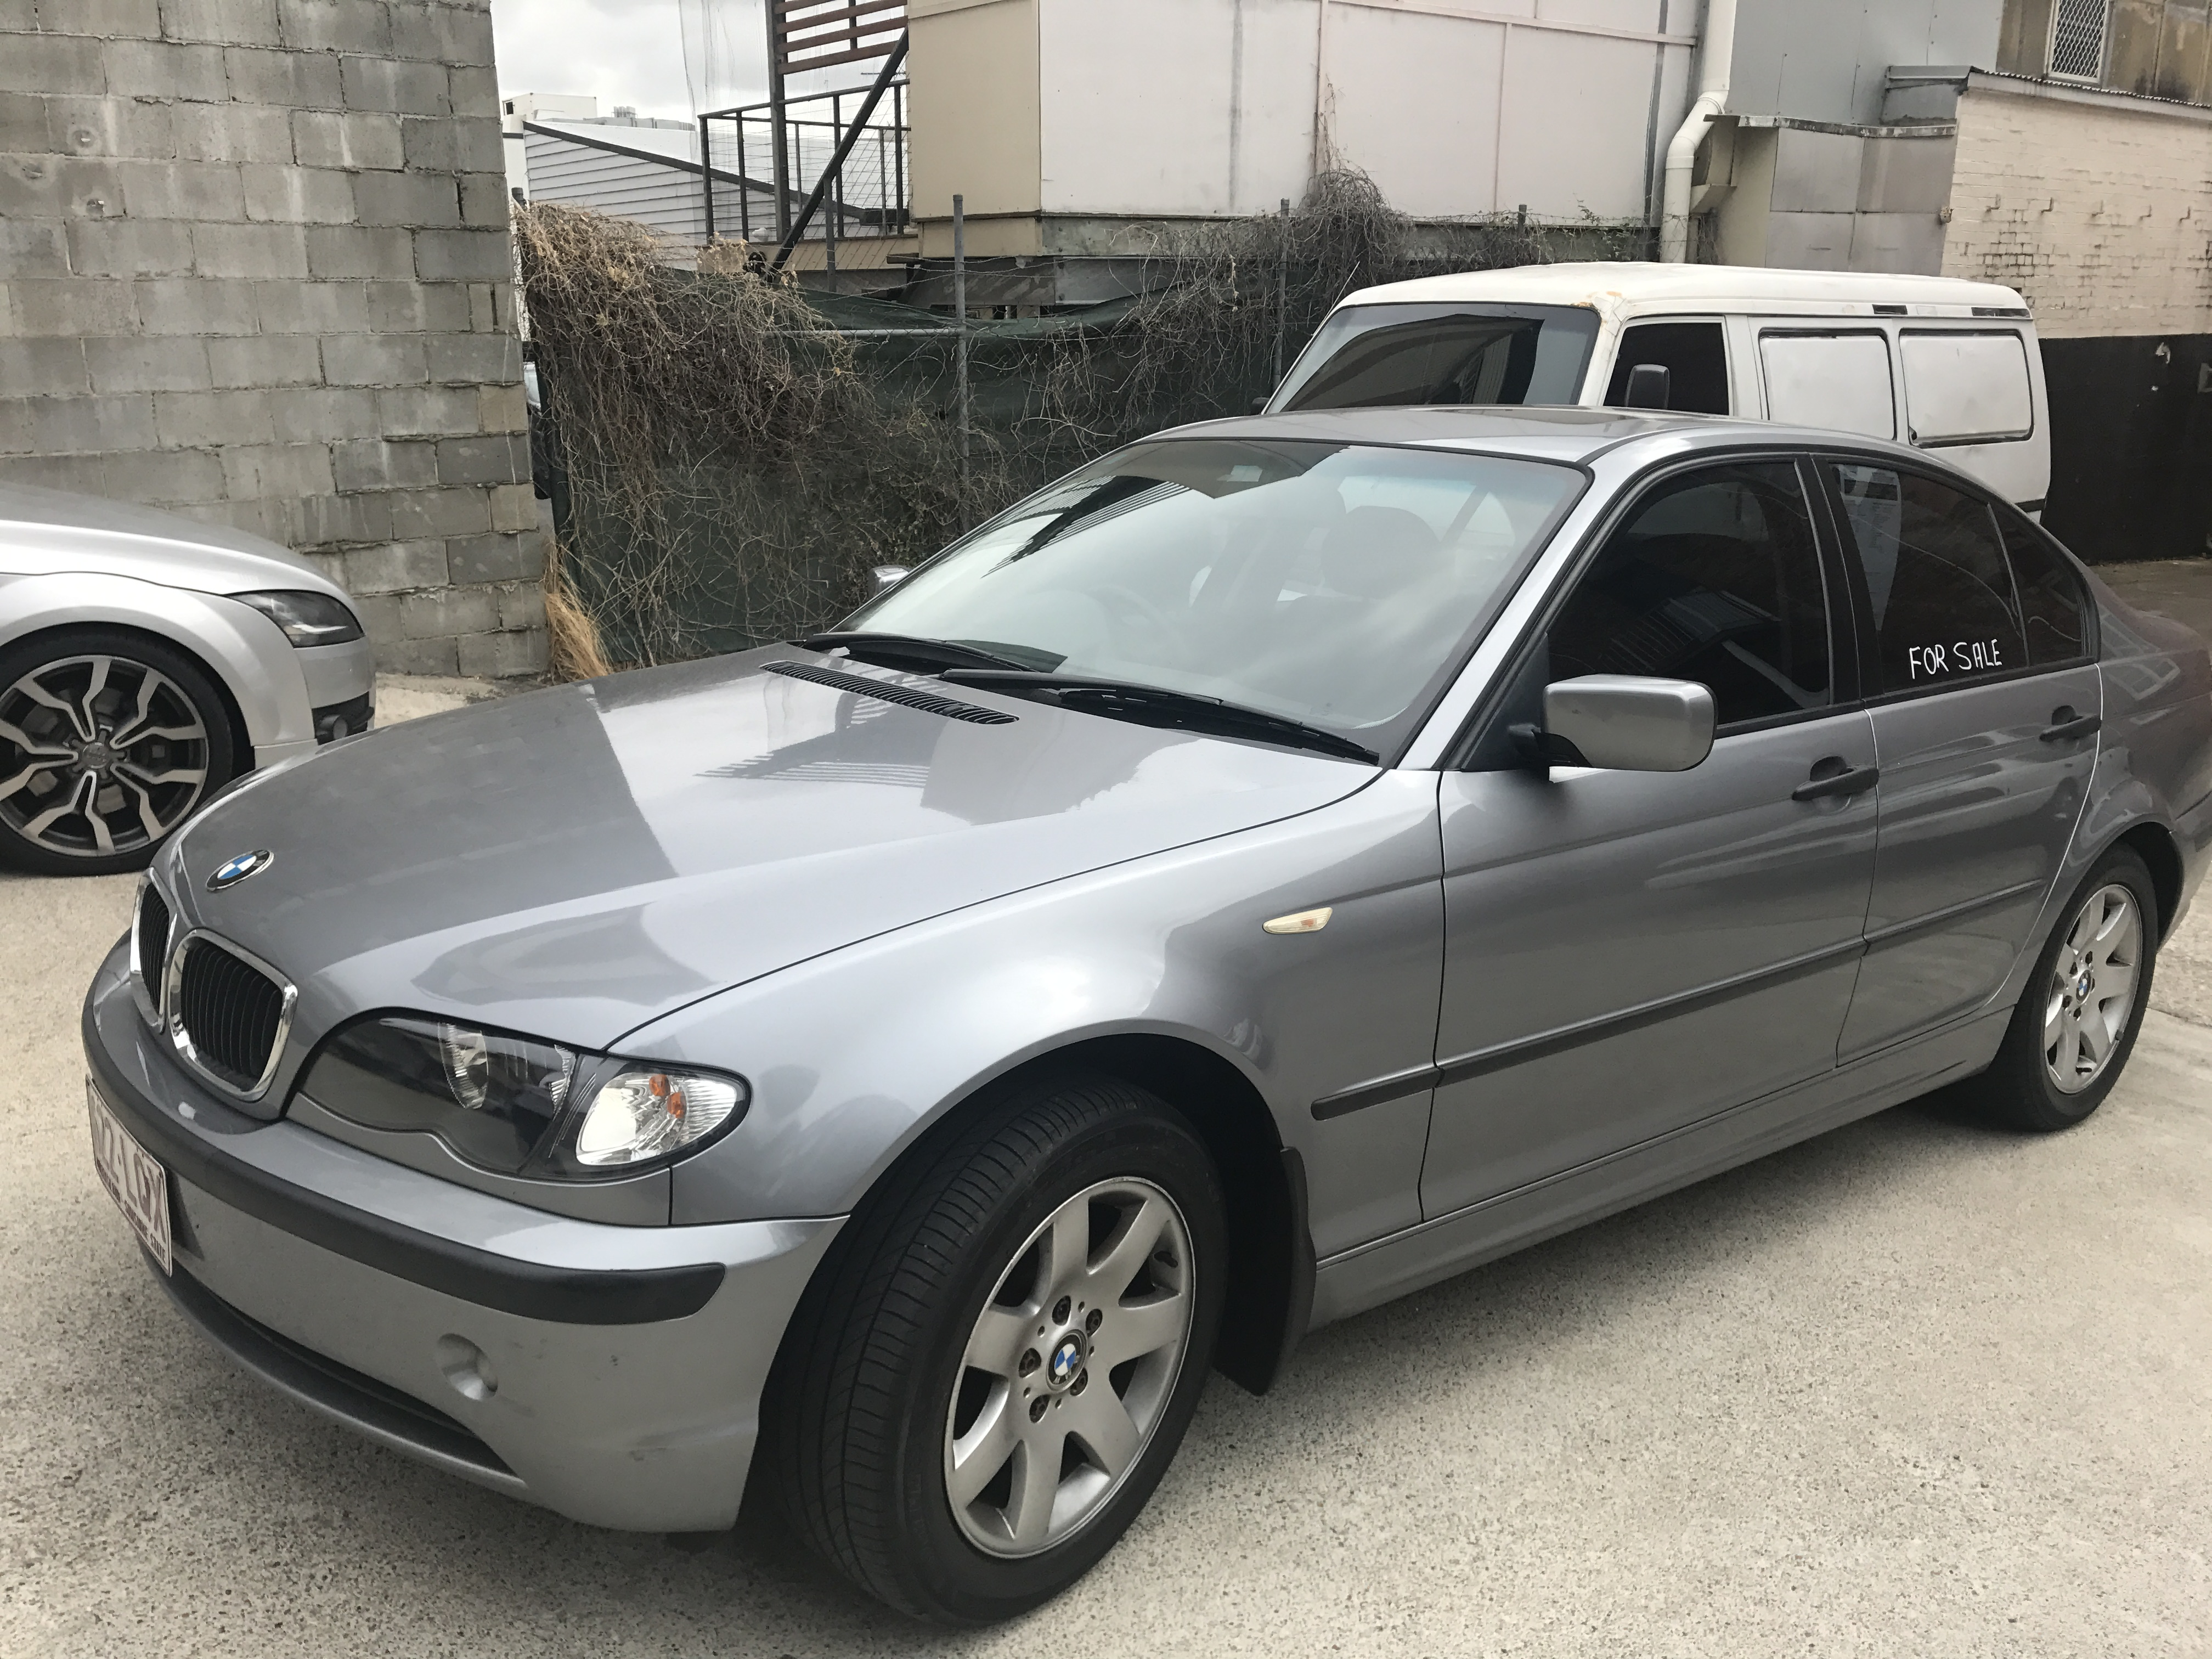 BMW 318i 2005   Auto, 4 Door, German Engineering. Electric Sunroof, Low Mileage, Leather Upholstery...